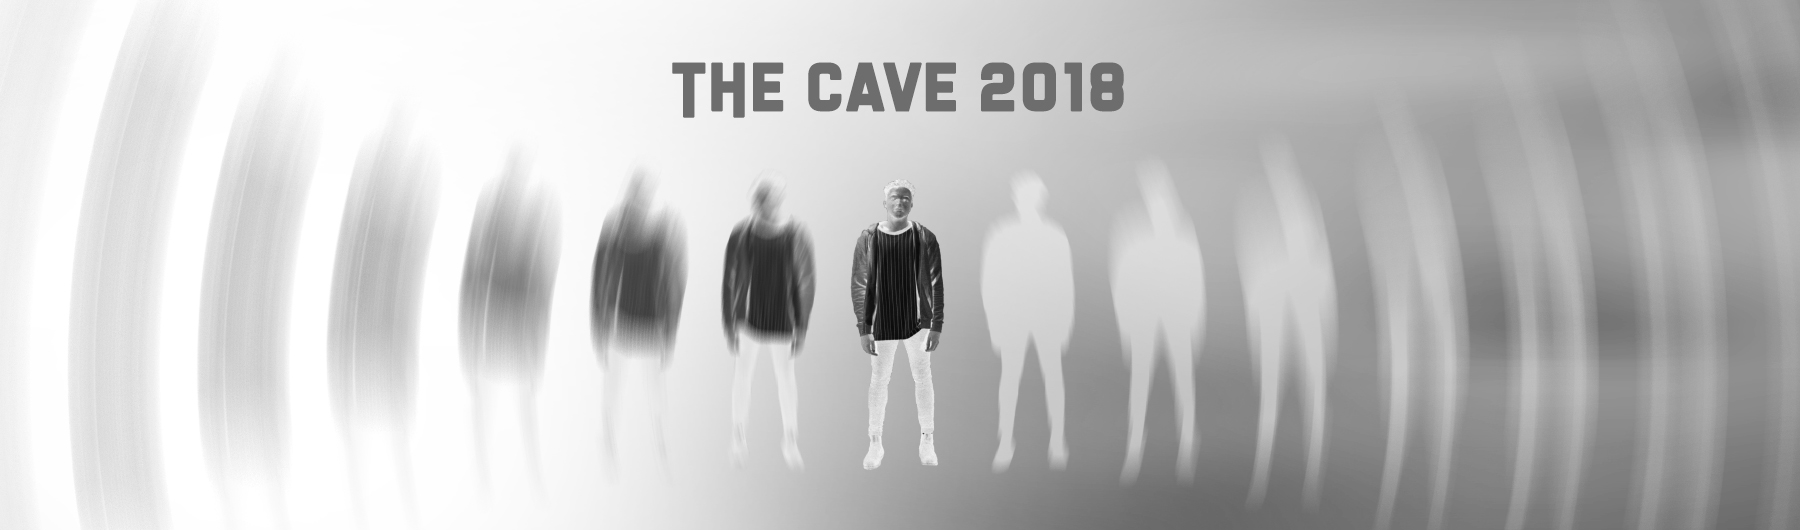 The Cave 2018